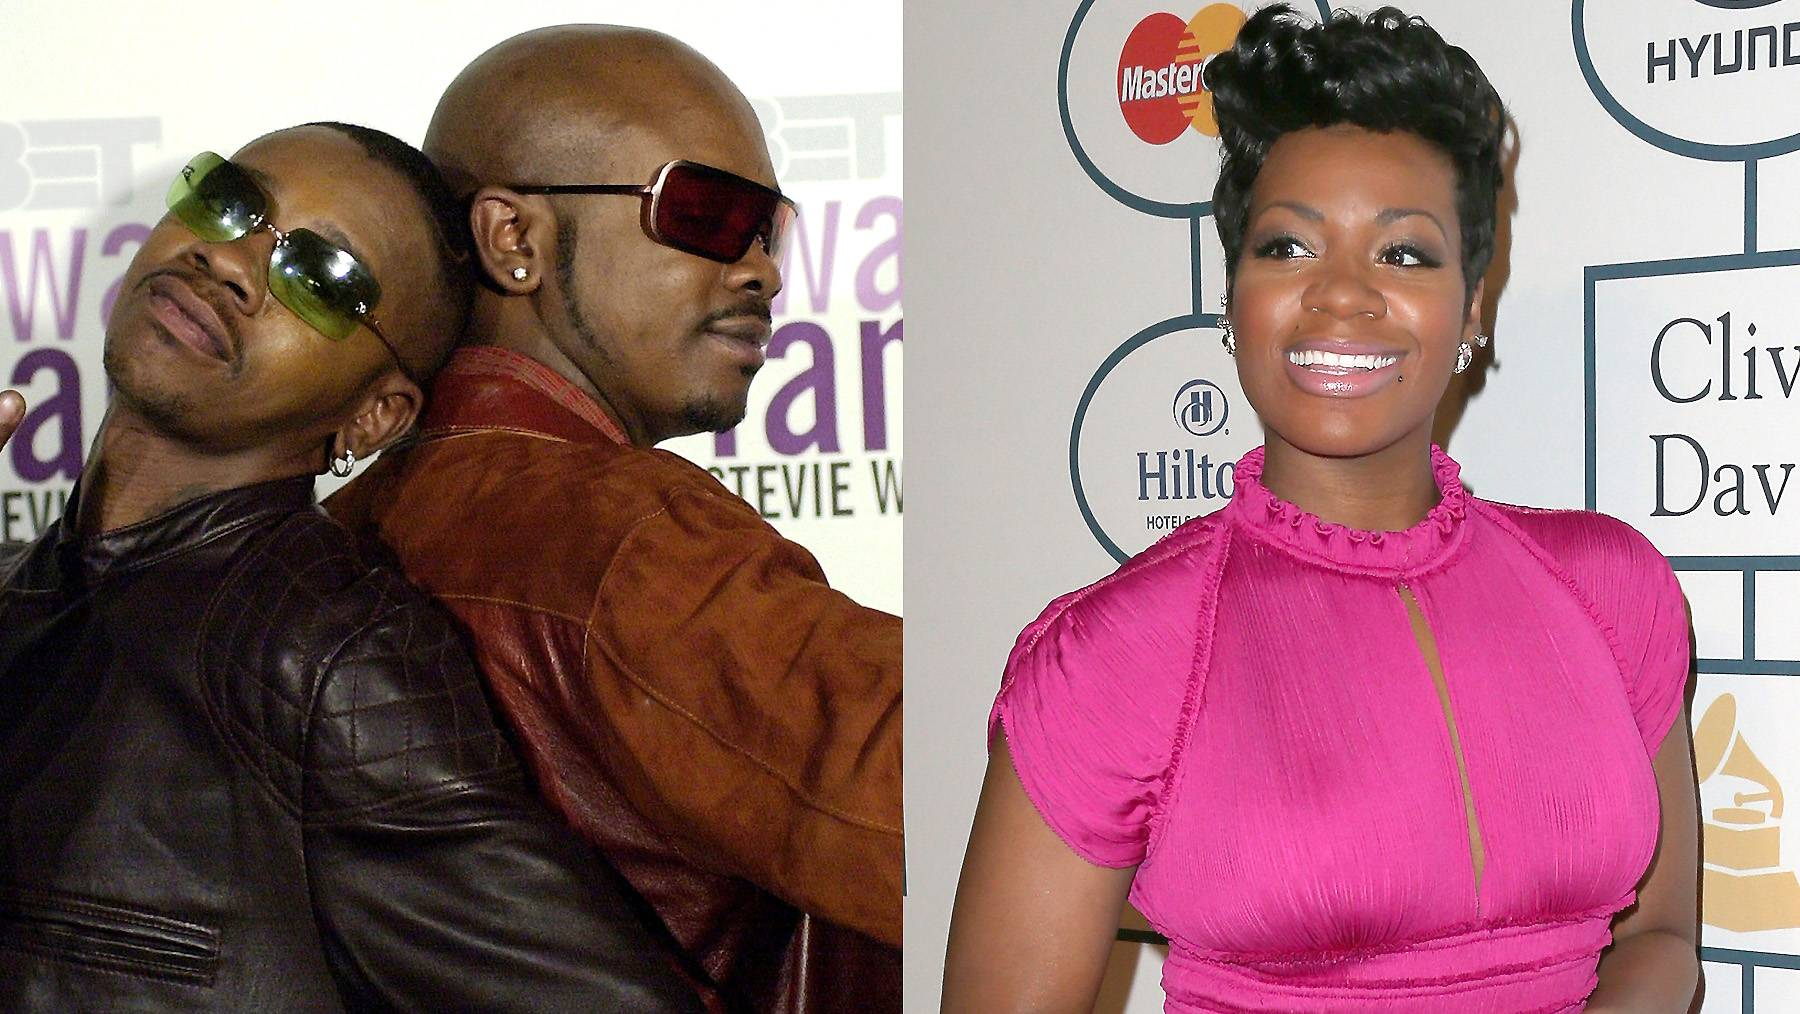 In the Family  - Those blaring vocals must run in the family! Fantasia and K-Ci and JoJo are first cousins. (Photos from left: Stefan Zaklin/Getty Images, Frederick M. Brown/Getty Images)